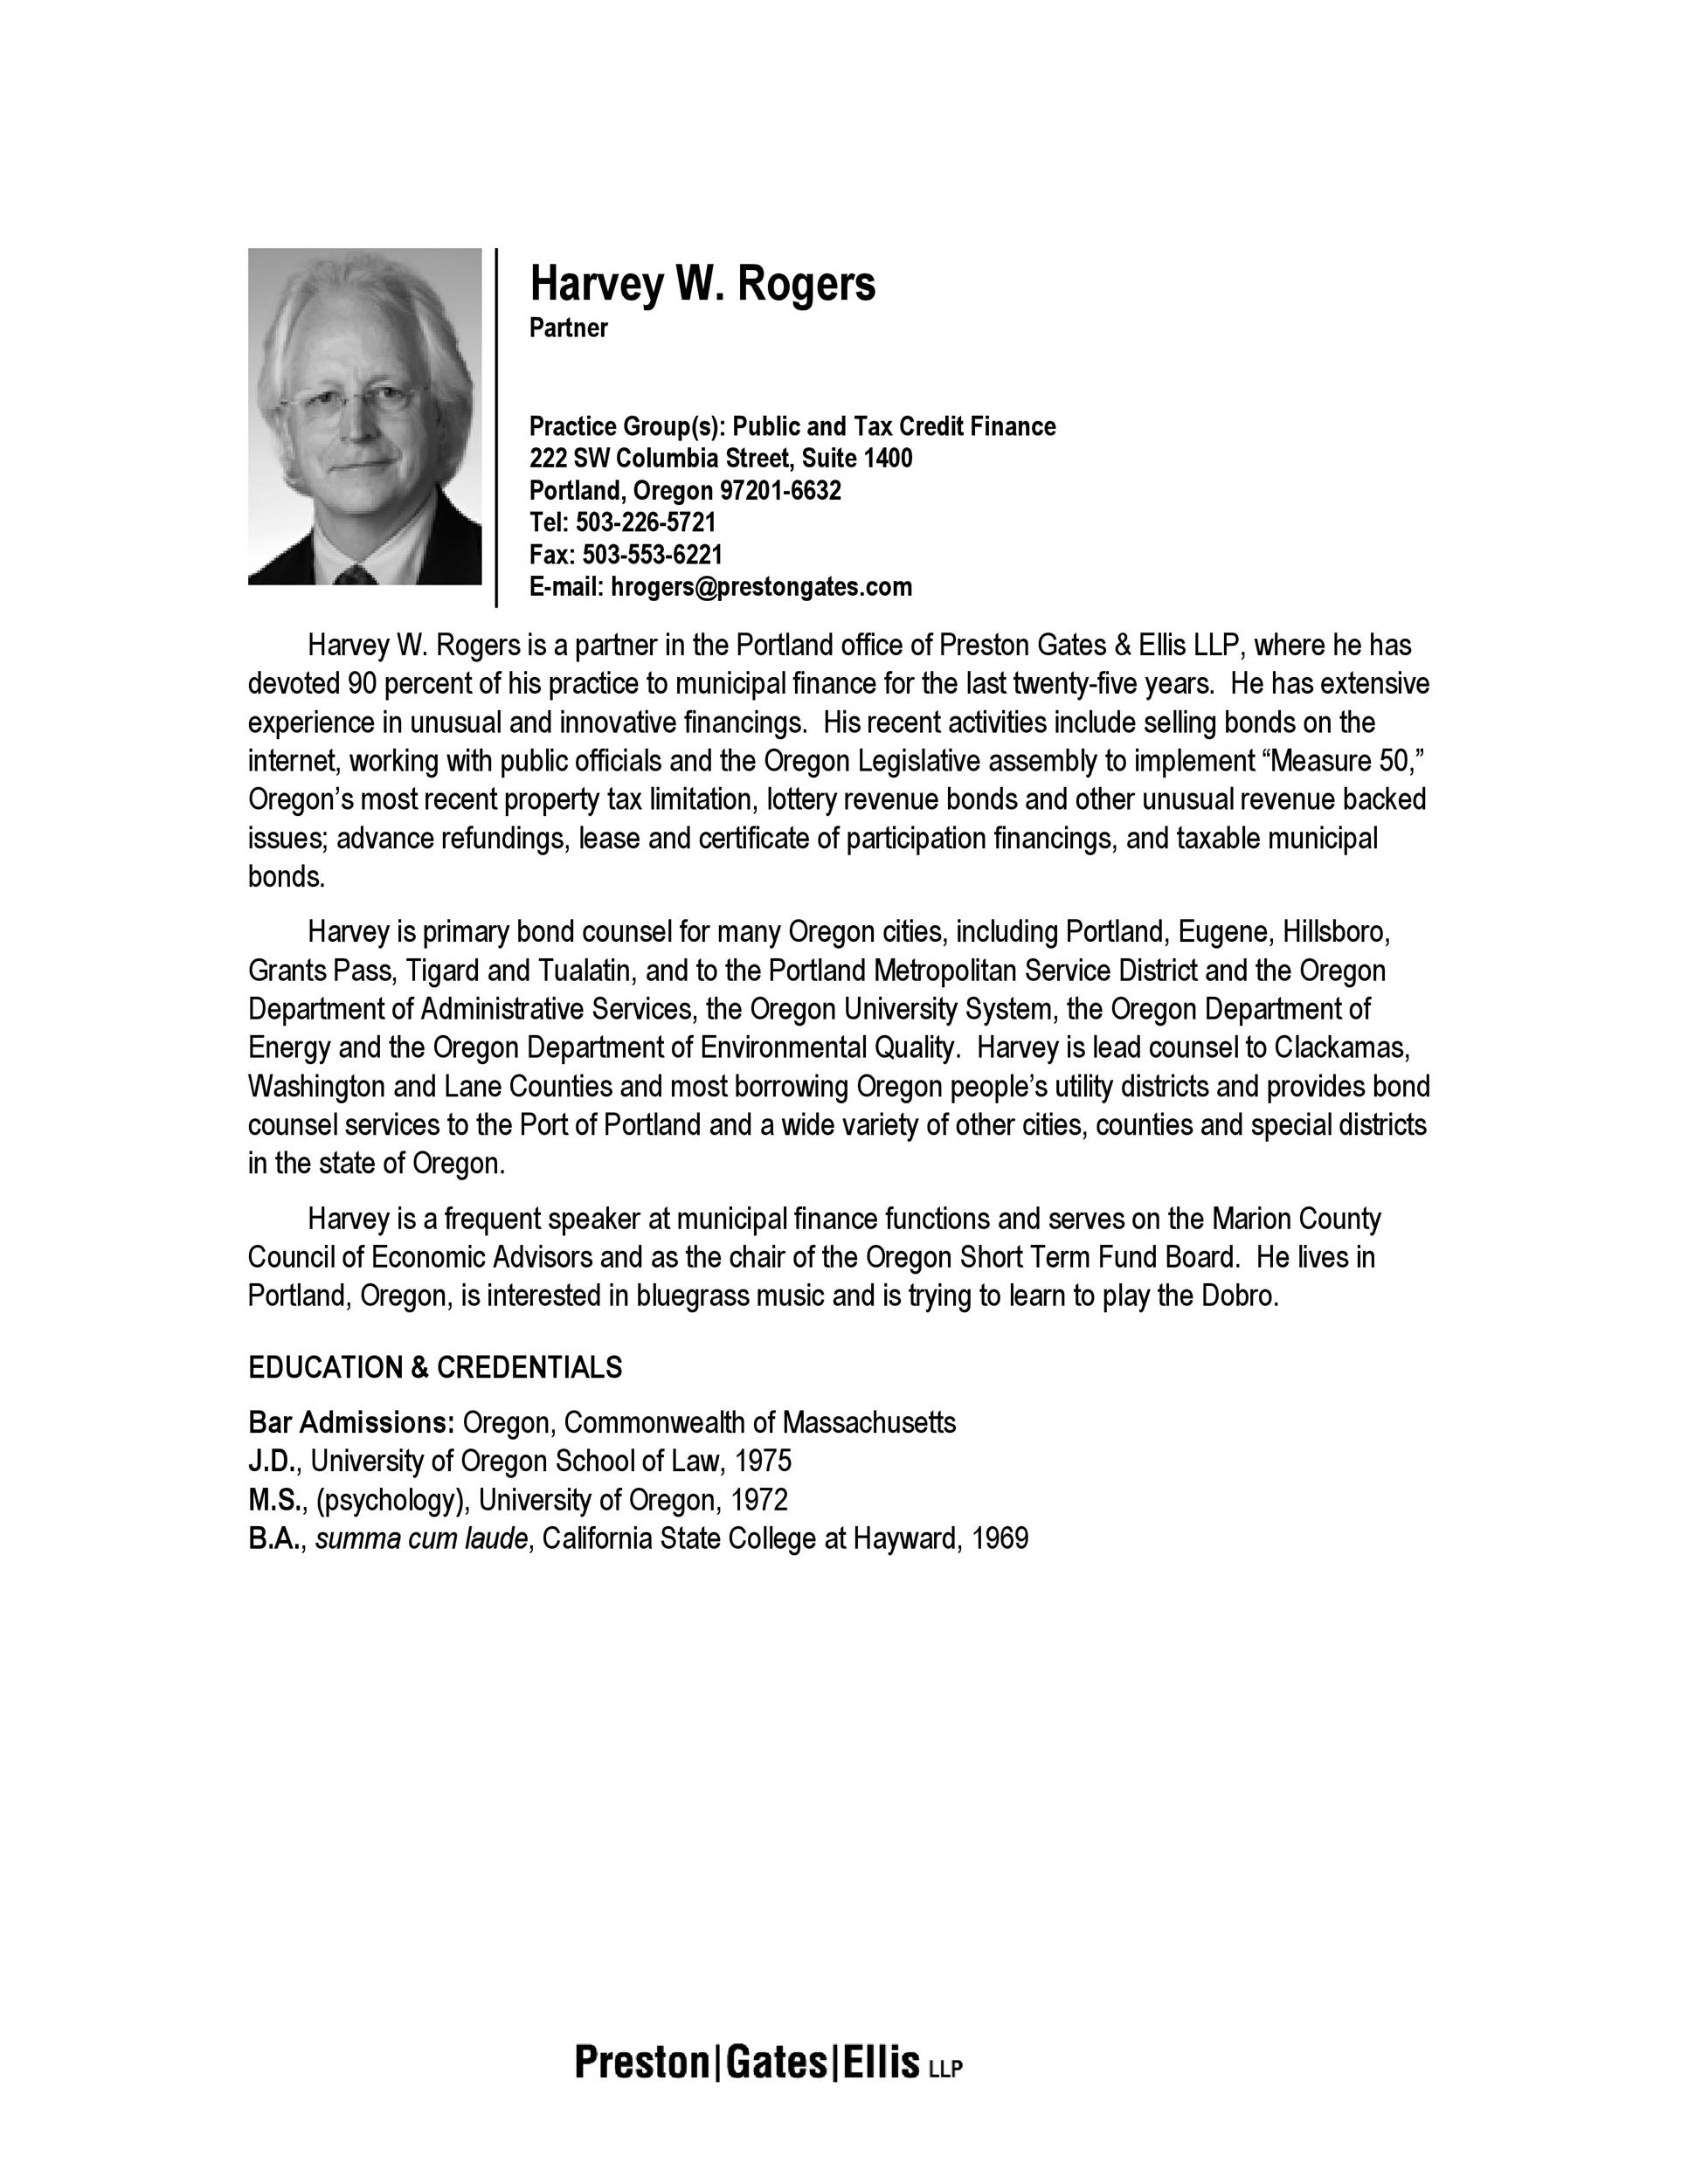 biography templates examples personal professional biography sample 02